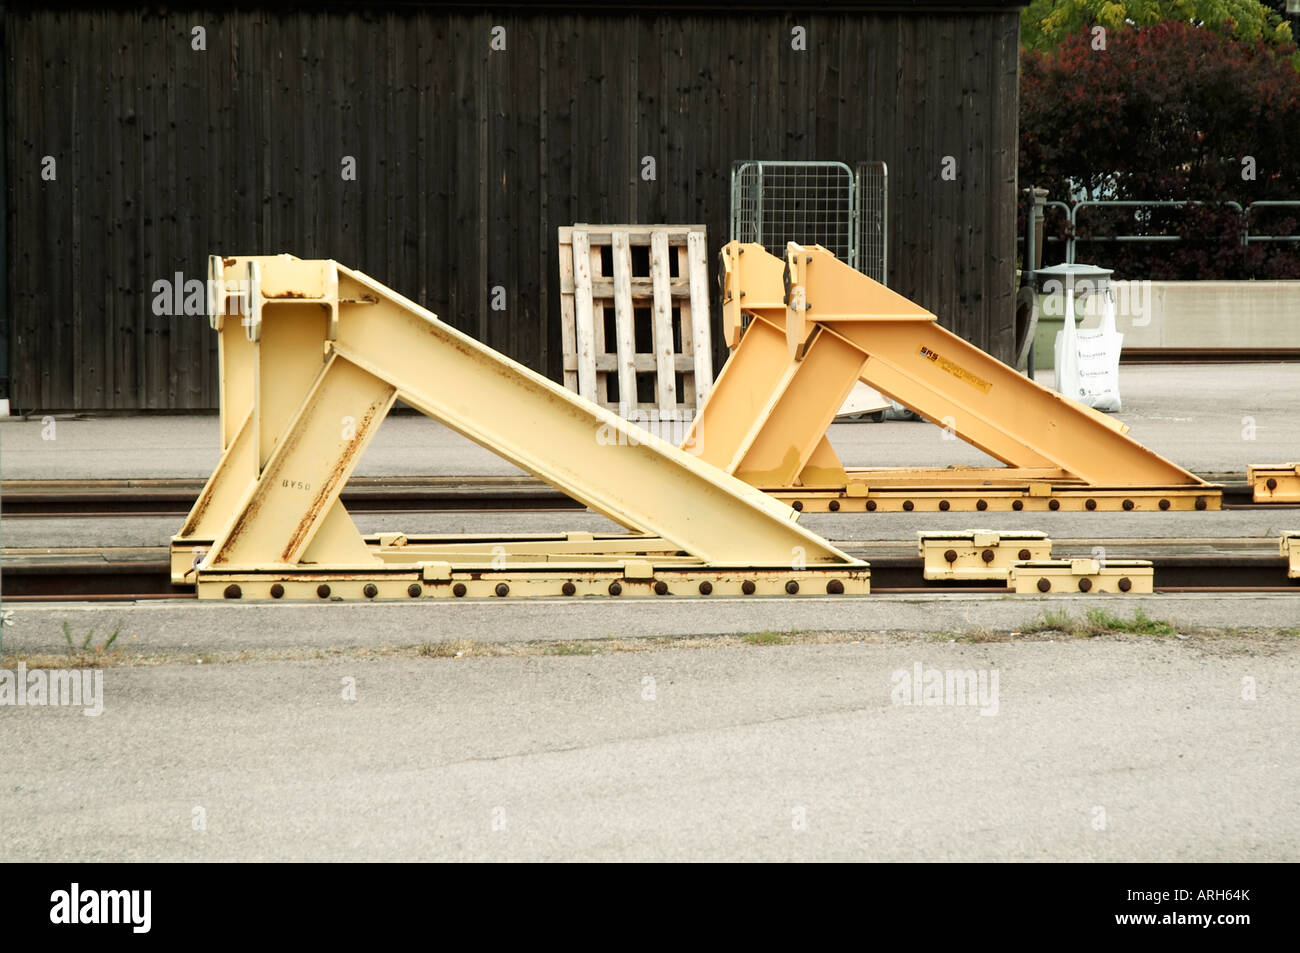 buffer buffers train tracks end of the line halt Stock Photo